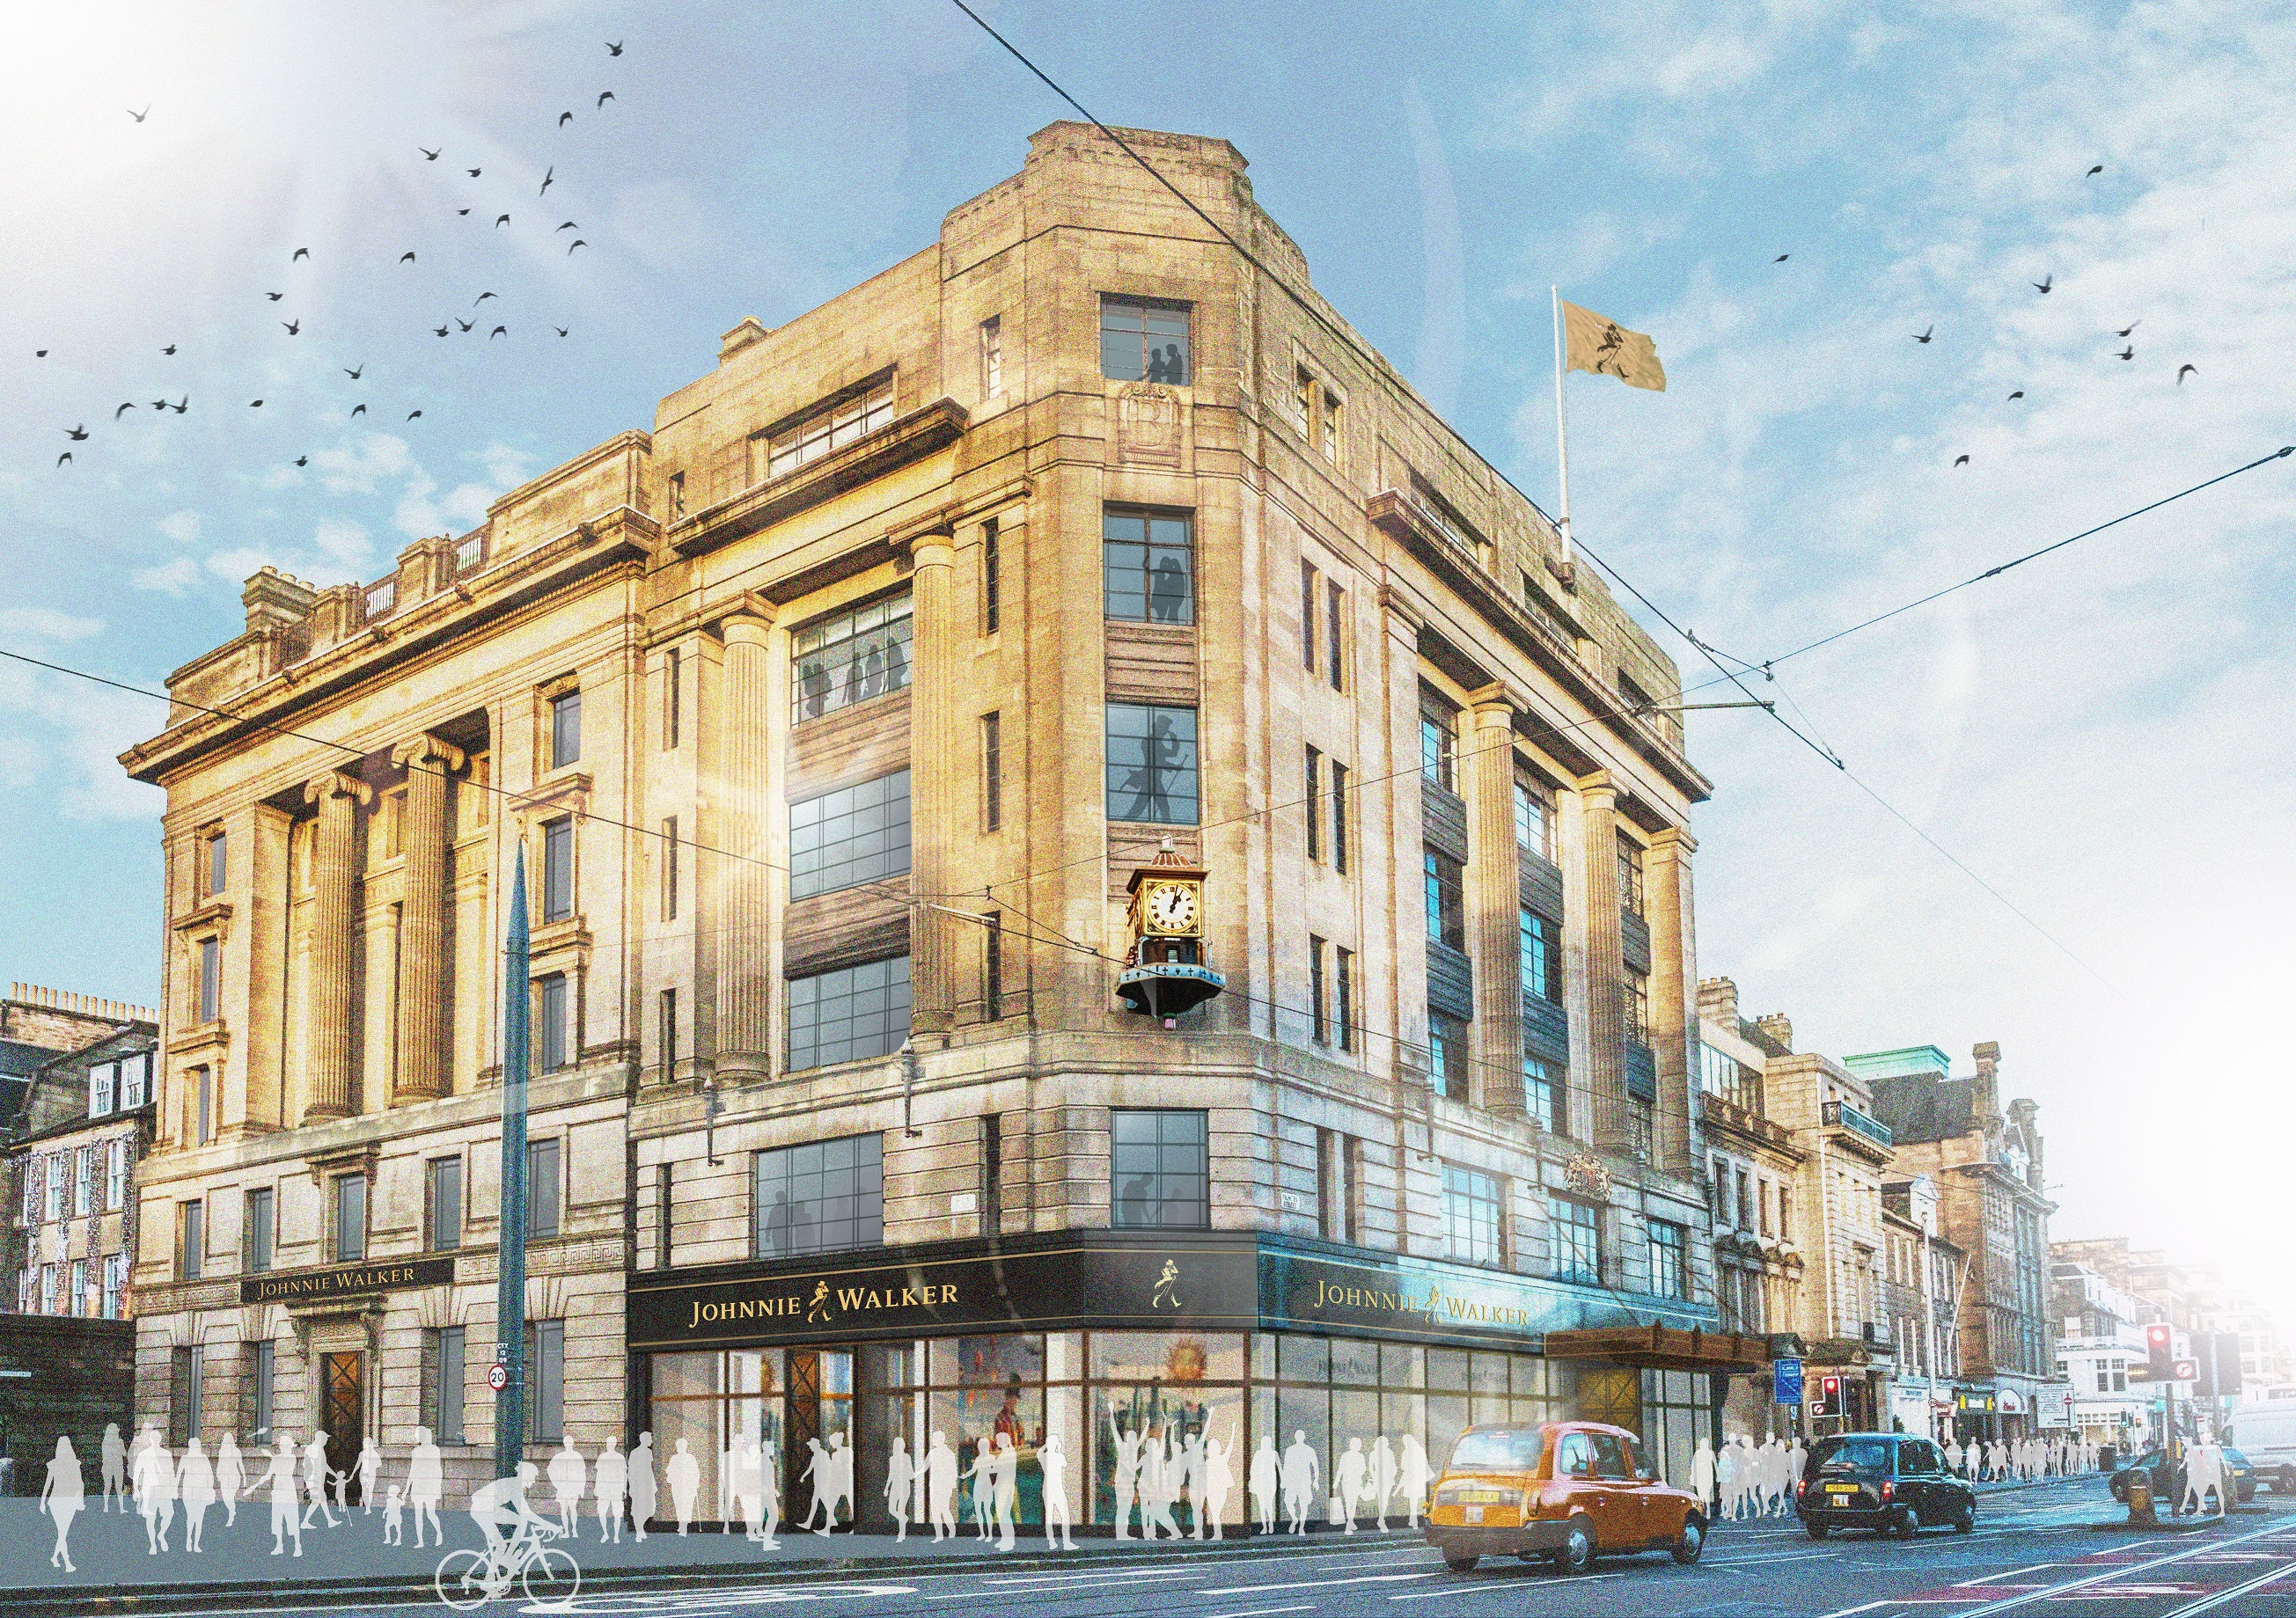 Planners back £150m Johnnie Walker multisensory project at former Princes Street House of Fraser store | Scottish Construction Now